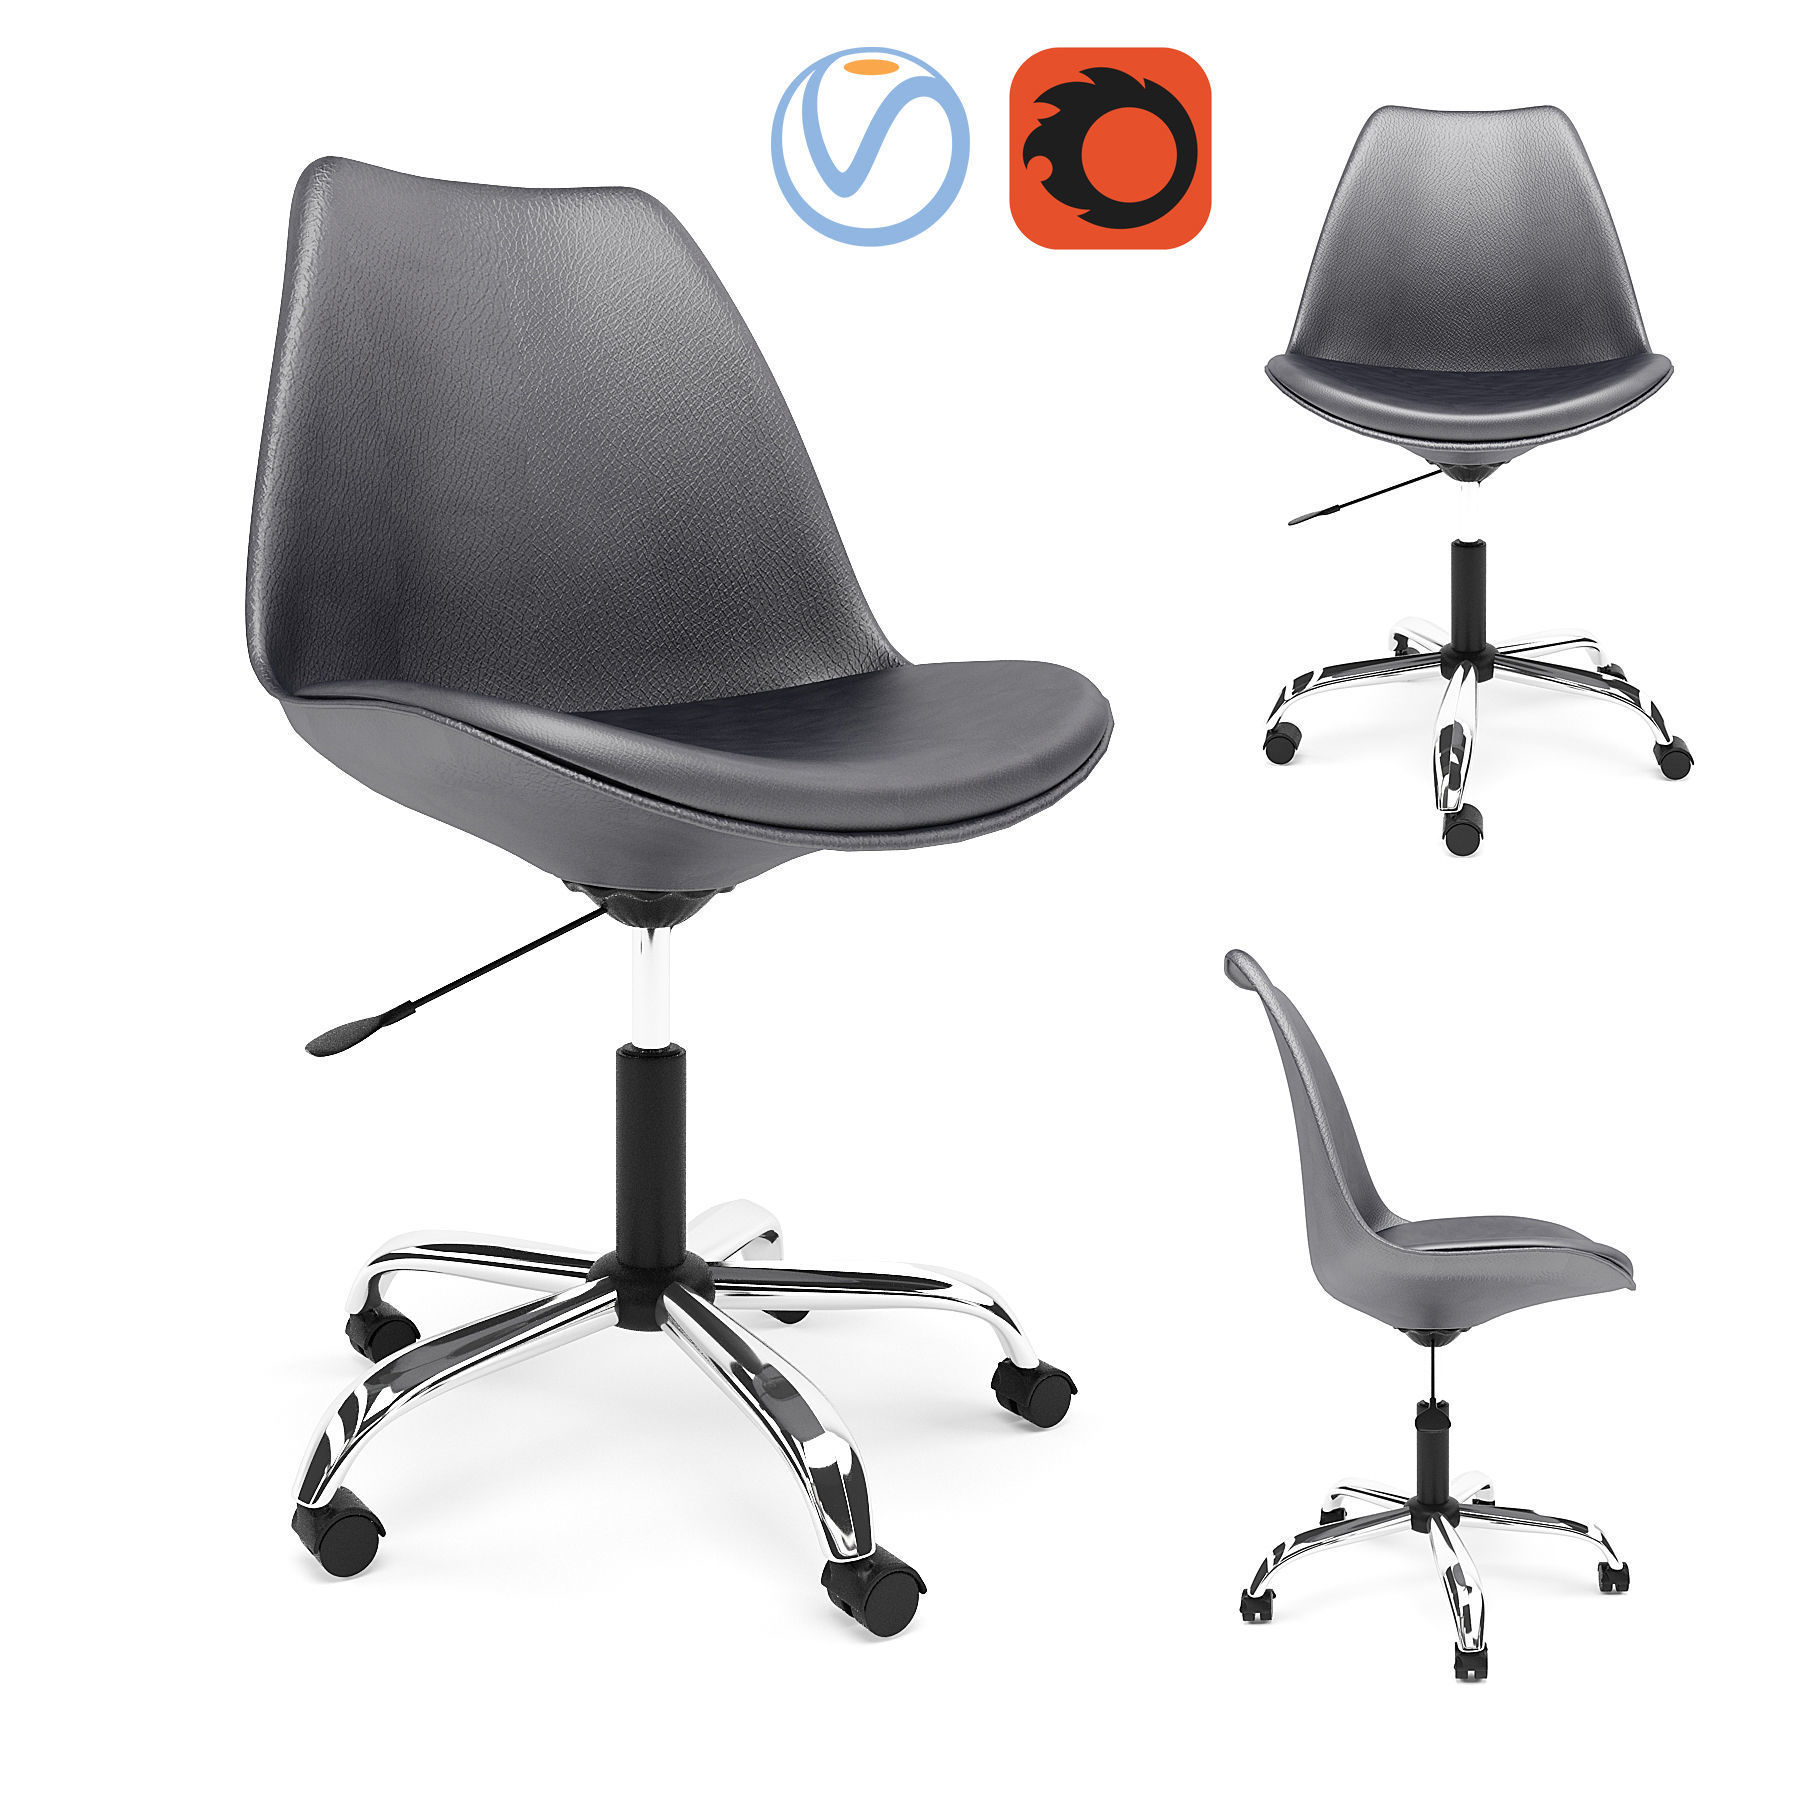 Desk Seat Hodedah Black Armless Swivel Office Desk Chair With Cushion Seat 3d Model